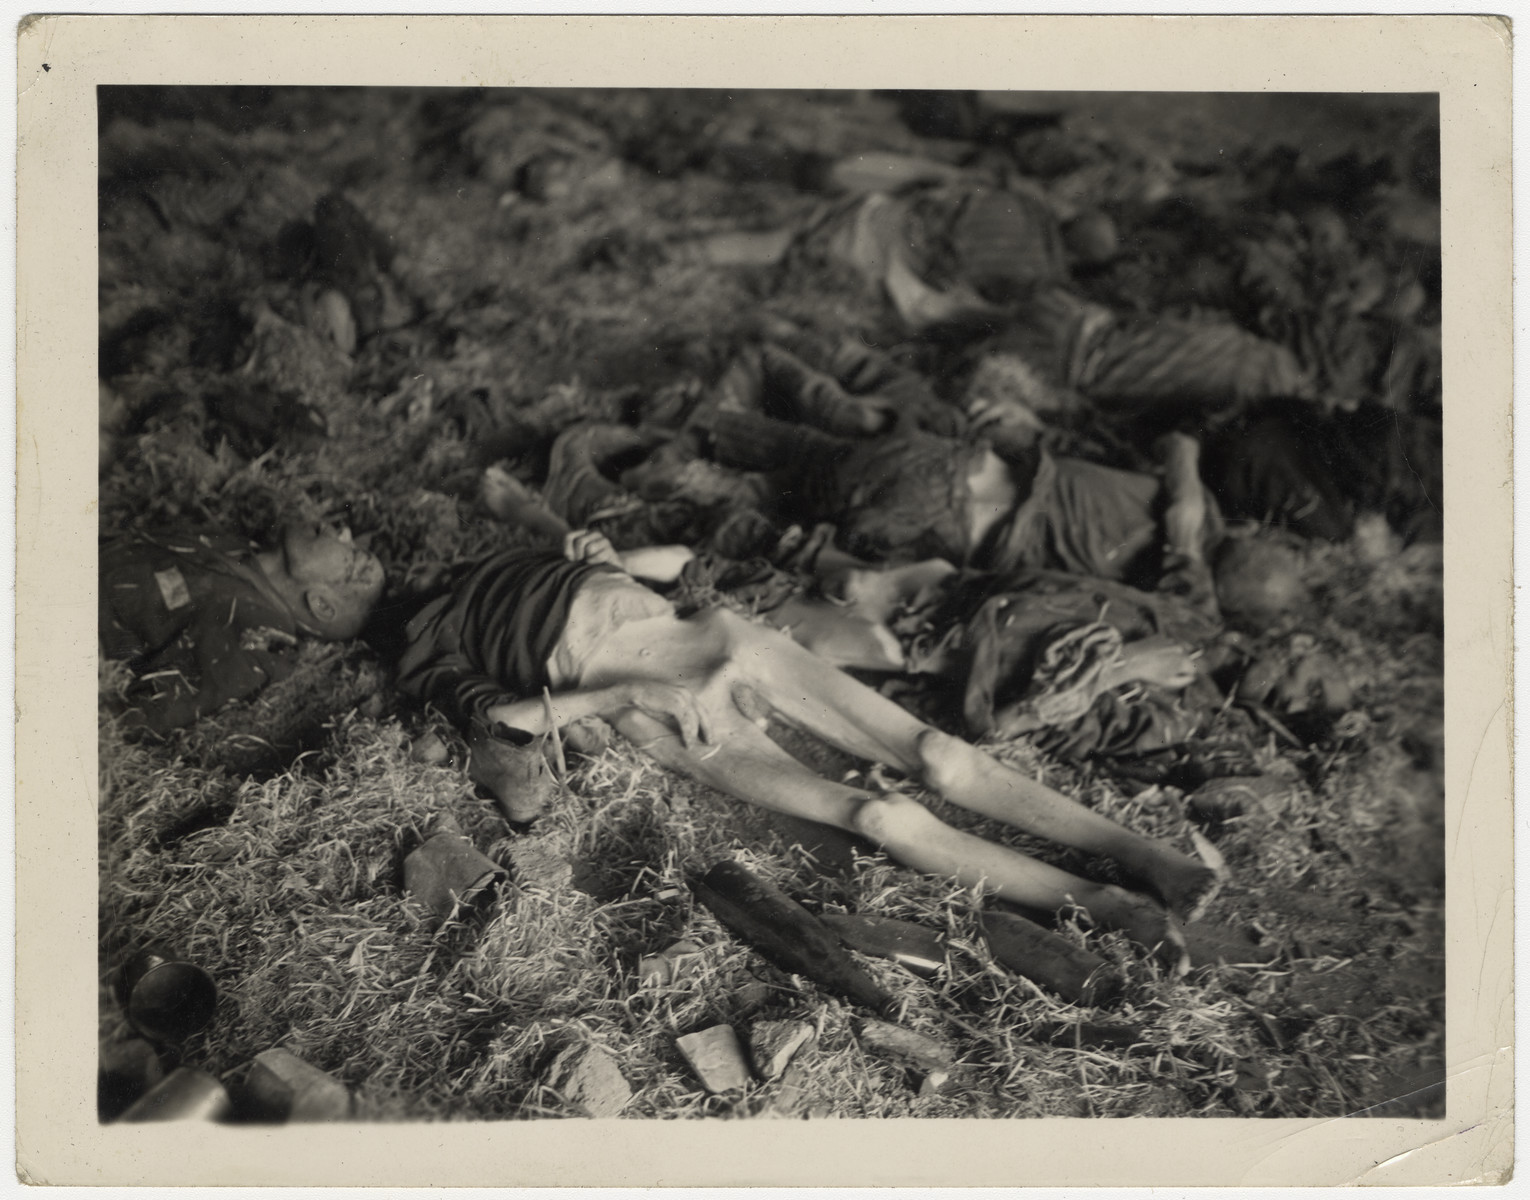 Corpses of victims lie on the straw floor of a barrack of the Nordhausen concentration camp.